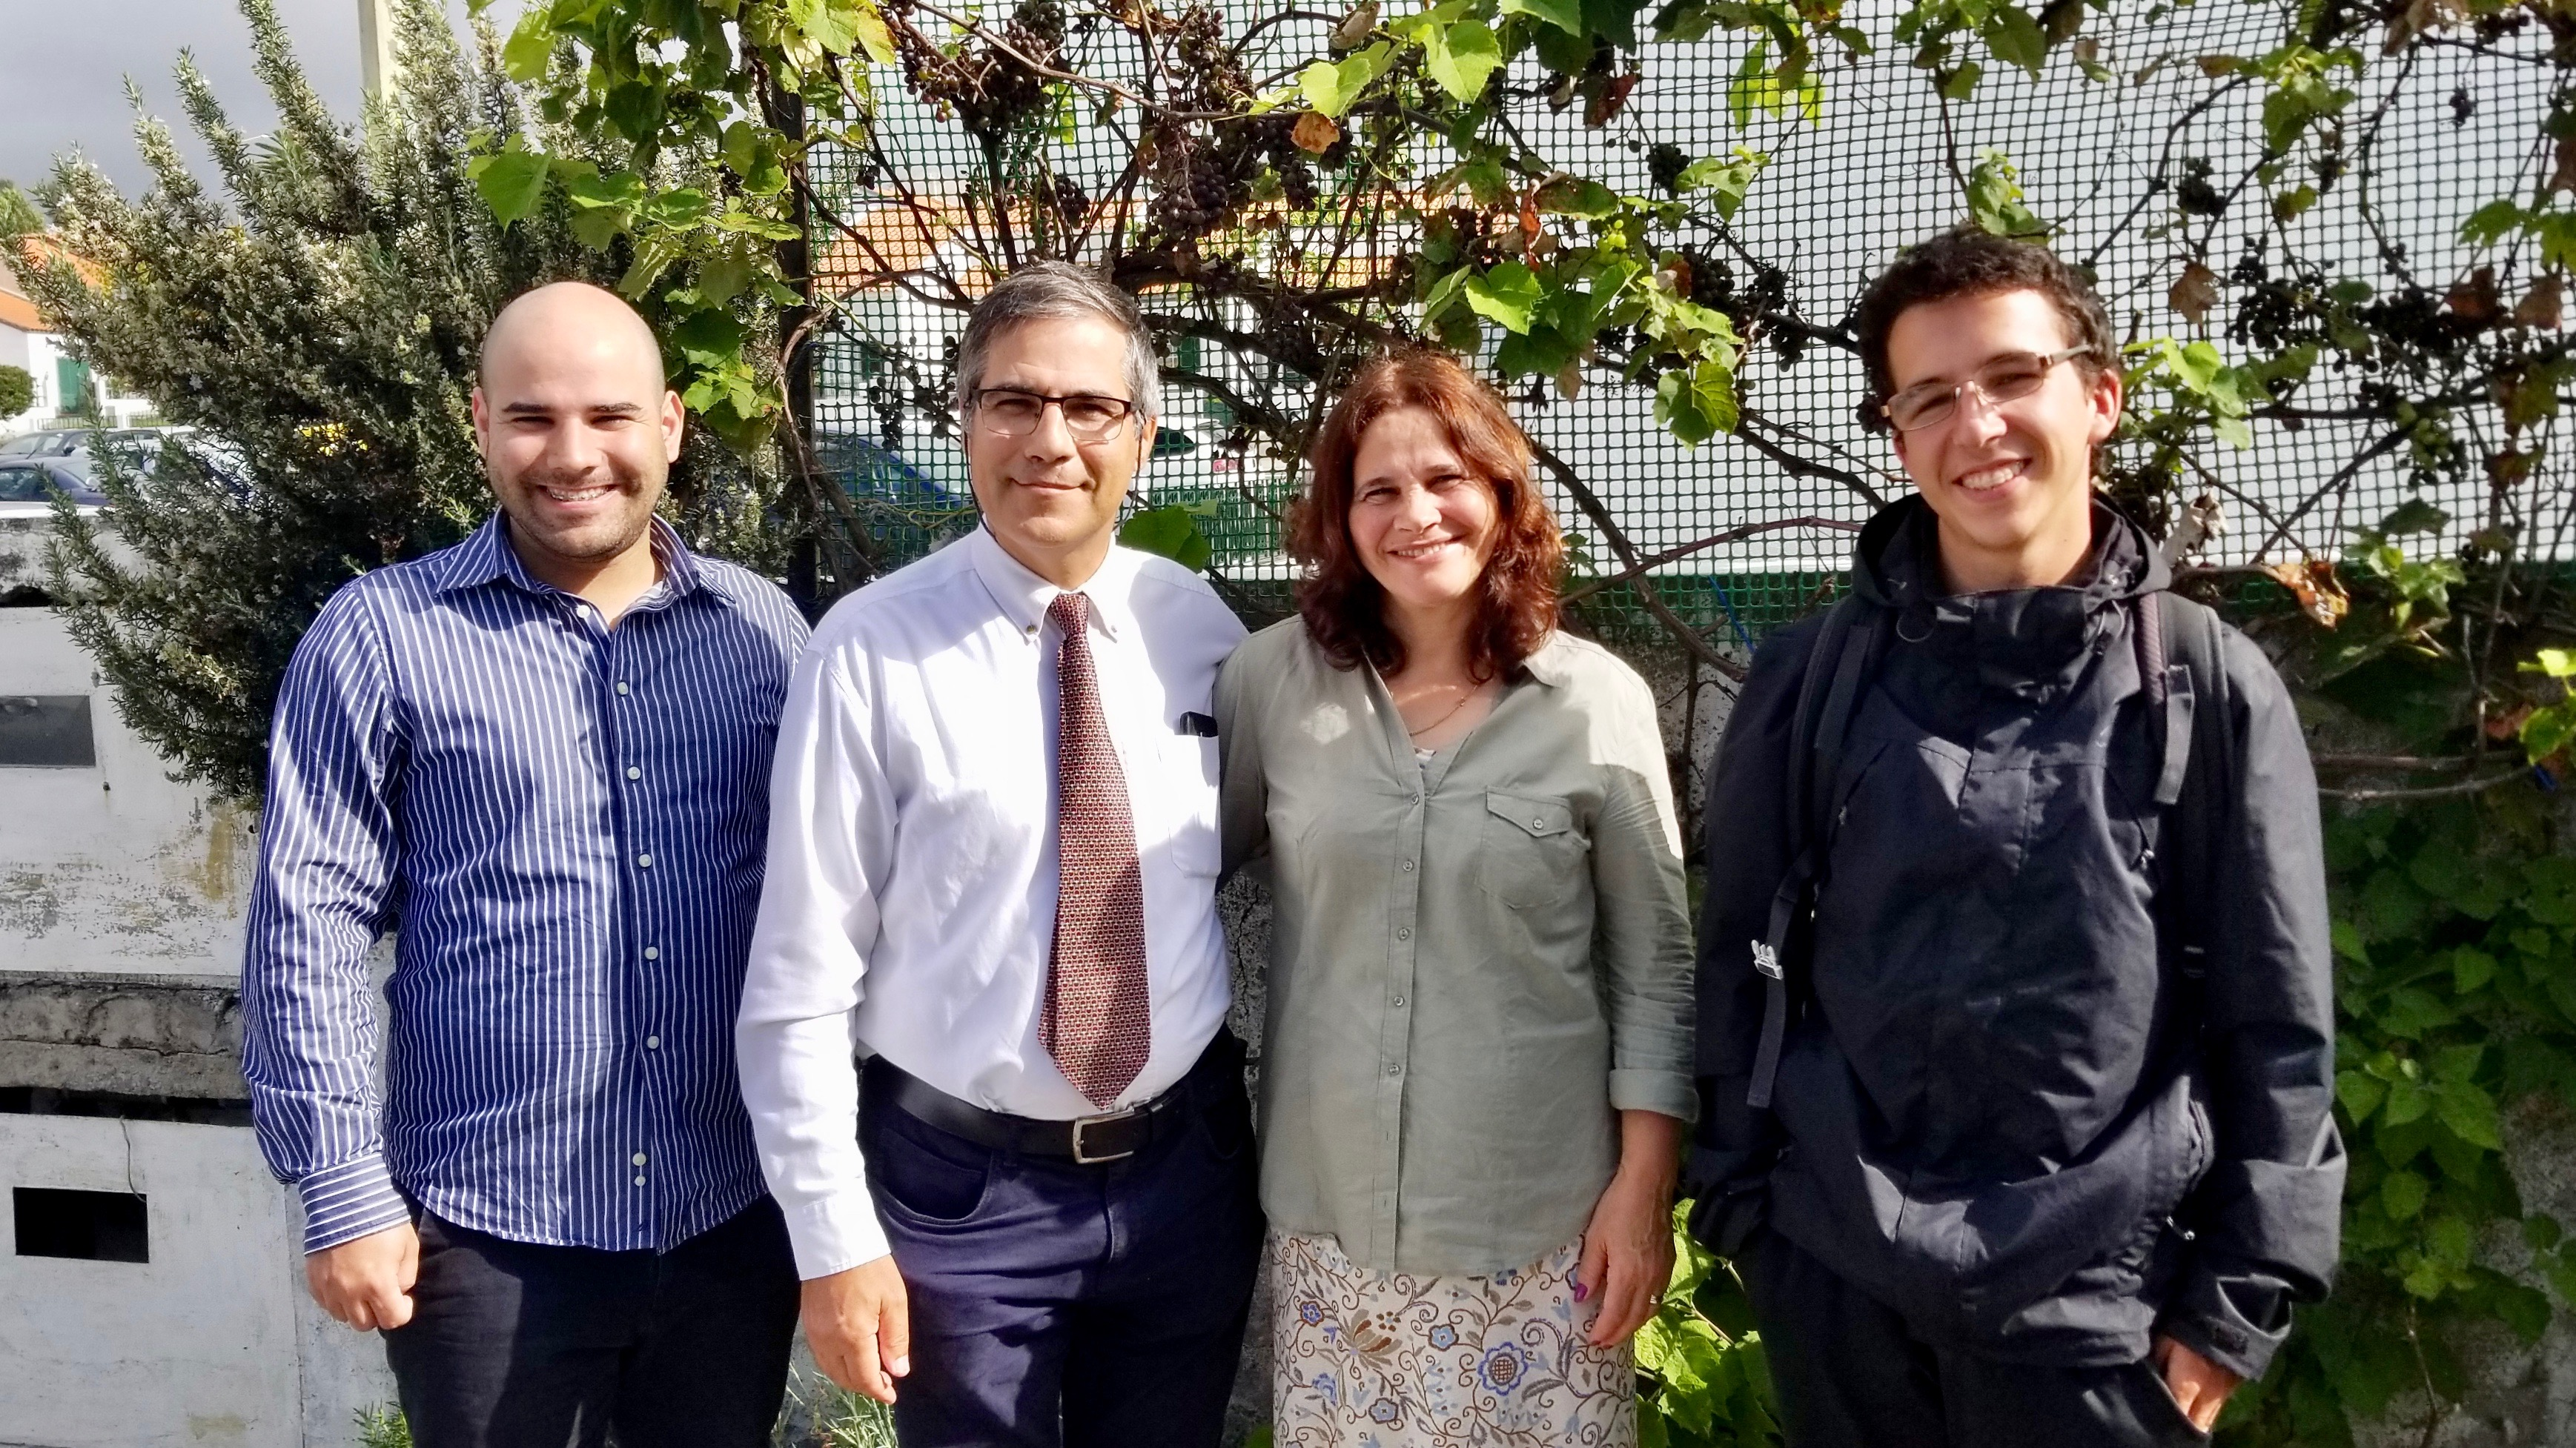 President João Joaquim Pinto, second from left, the second counselor in the Açores Portugal District, is photographed with his wife, Alexandra Pinto; their oldest son, Abraão, left, and recent convert Júlio Costa, right, in Ponta Delgada on São Miguel Island on Sept. 17, 2019.